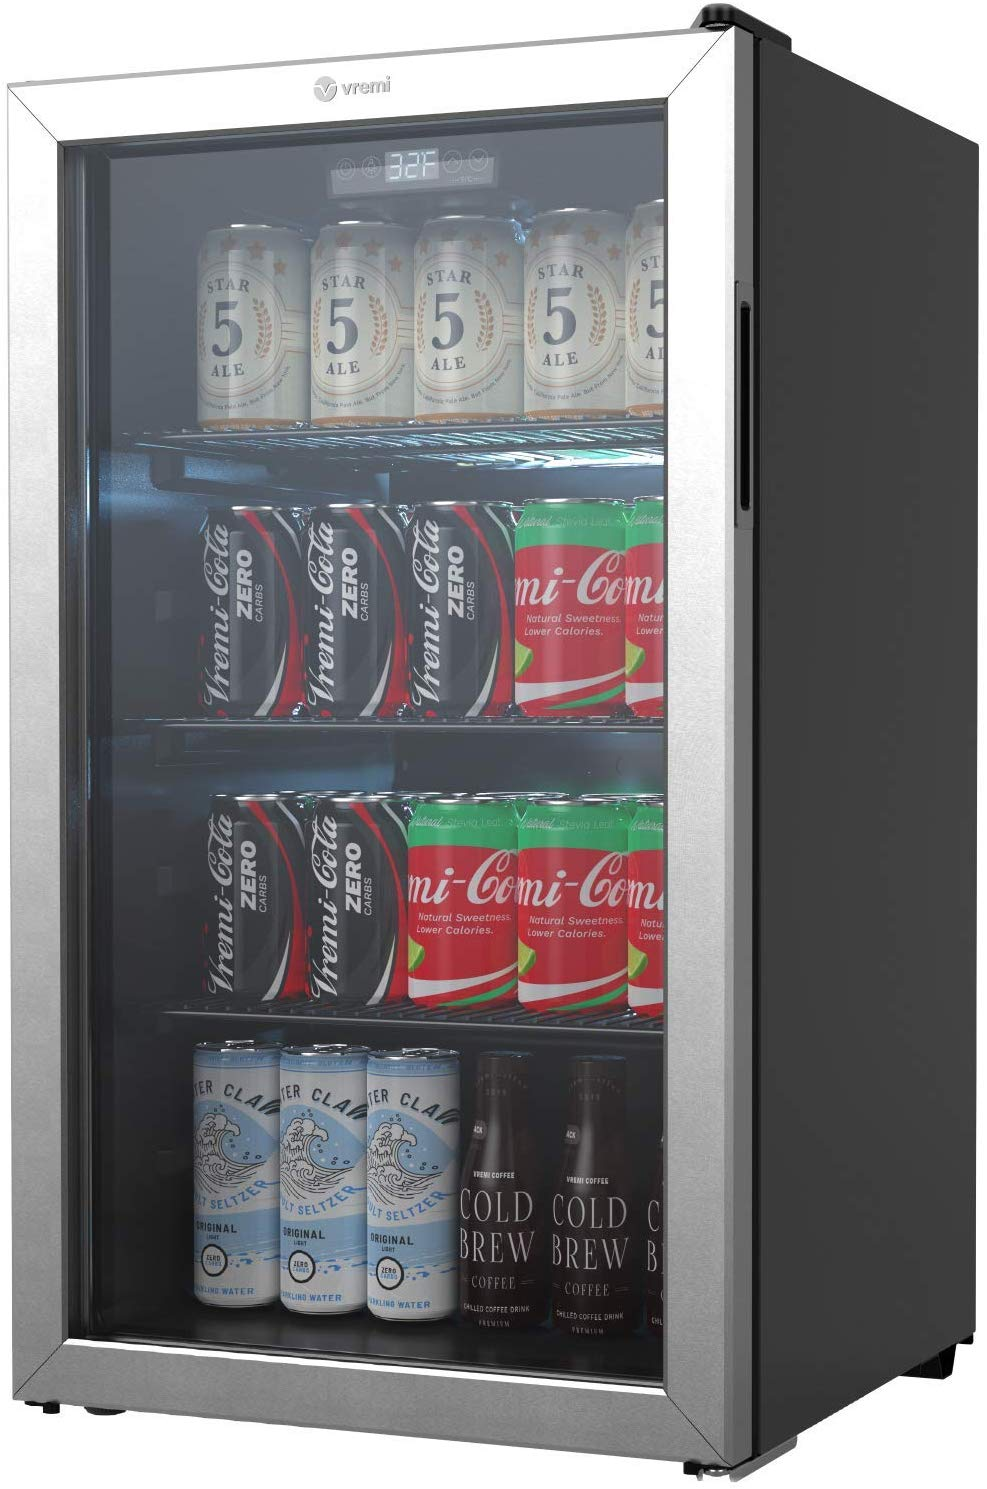 vremi 110 to 130 can beverage refrigerator and cooler 3 6 cu ft capacity mini fridge with glass door for soda beer or wine small drink dispenser